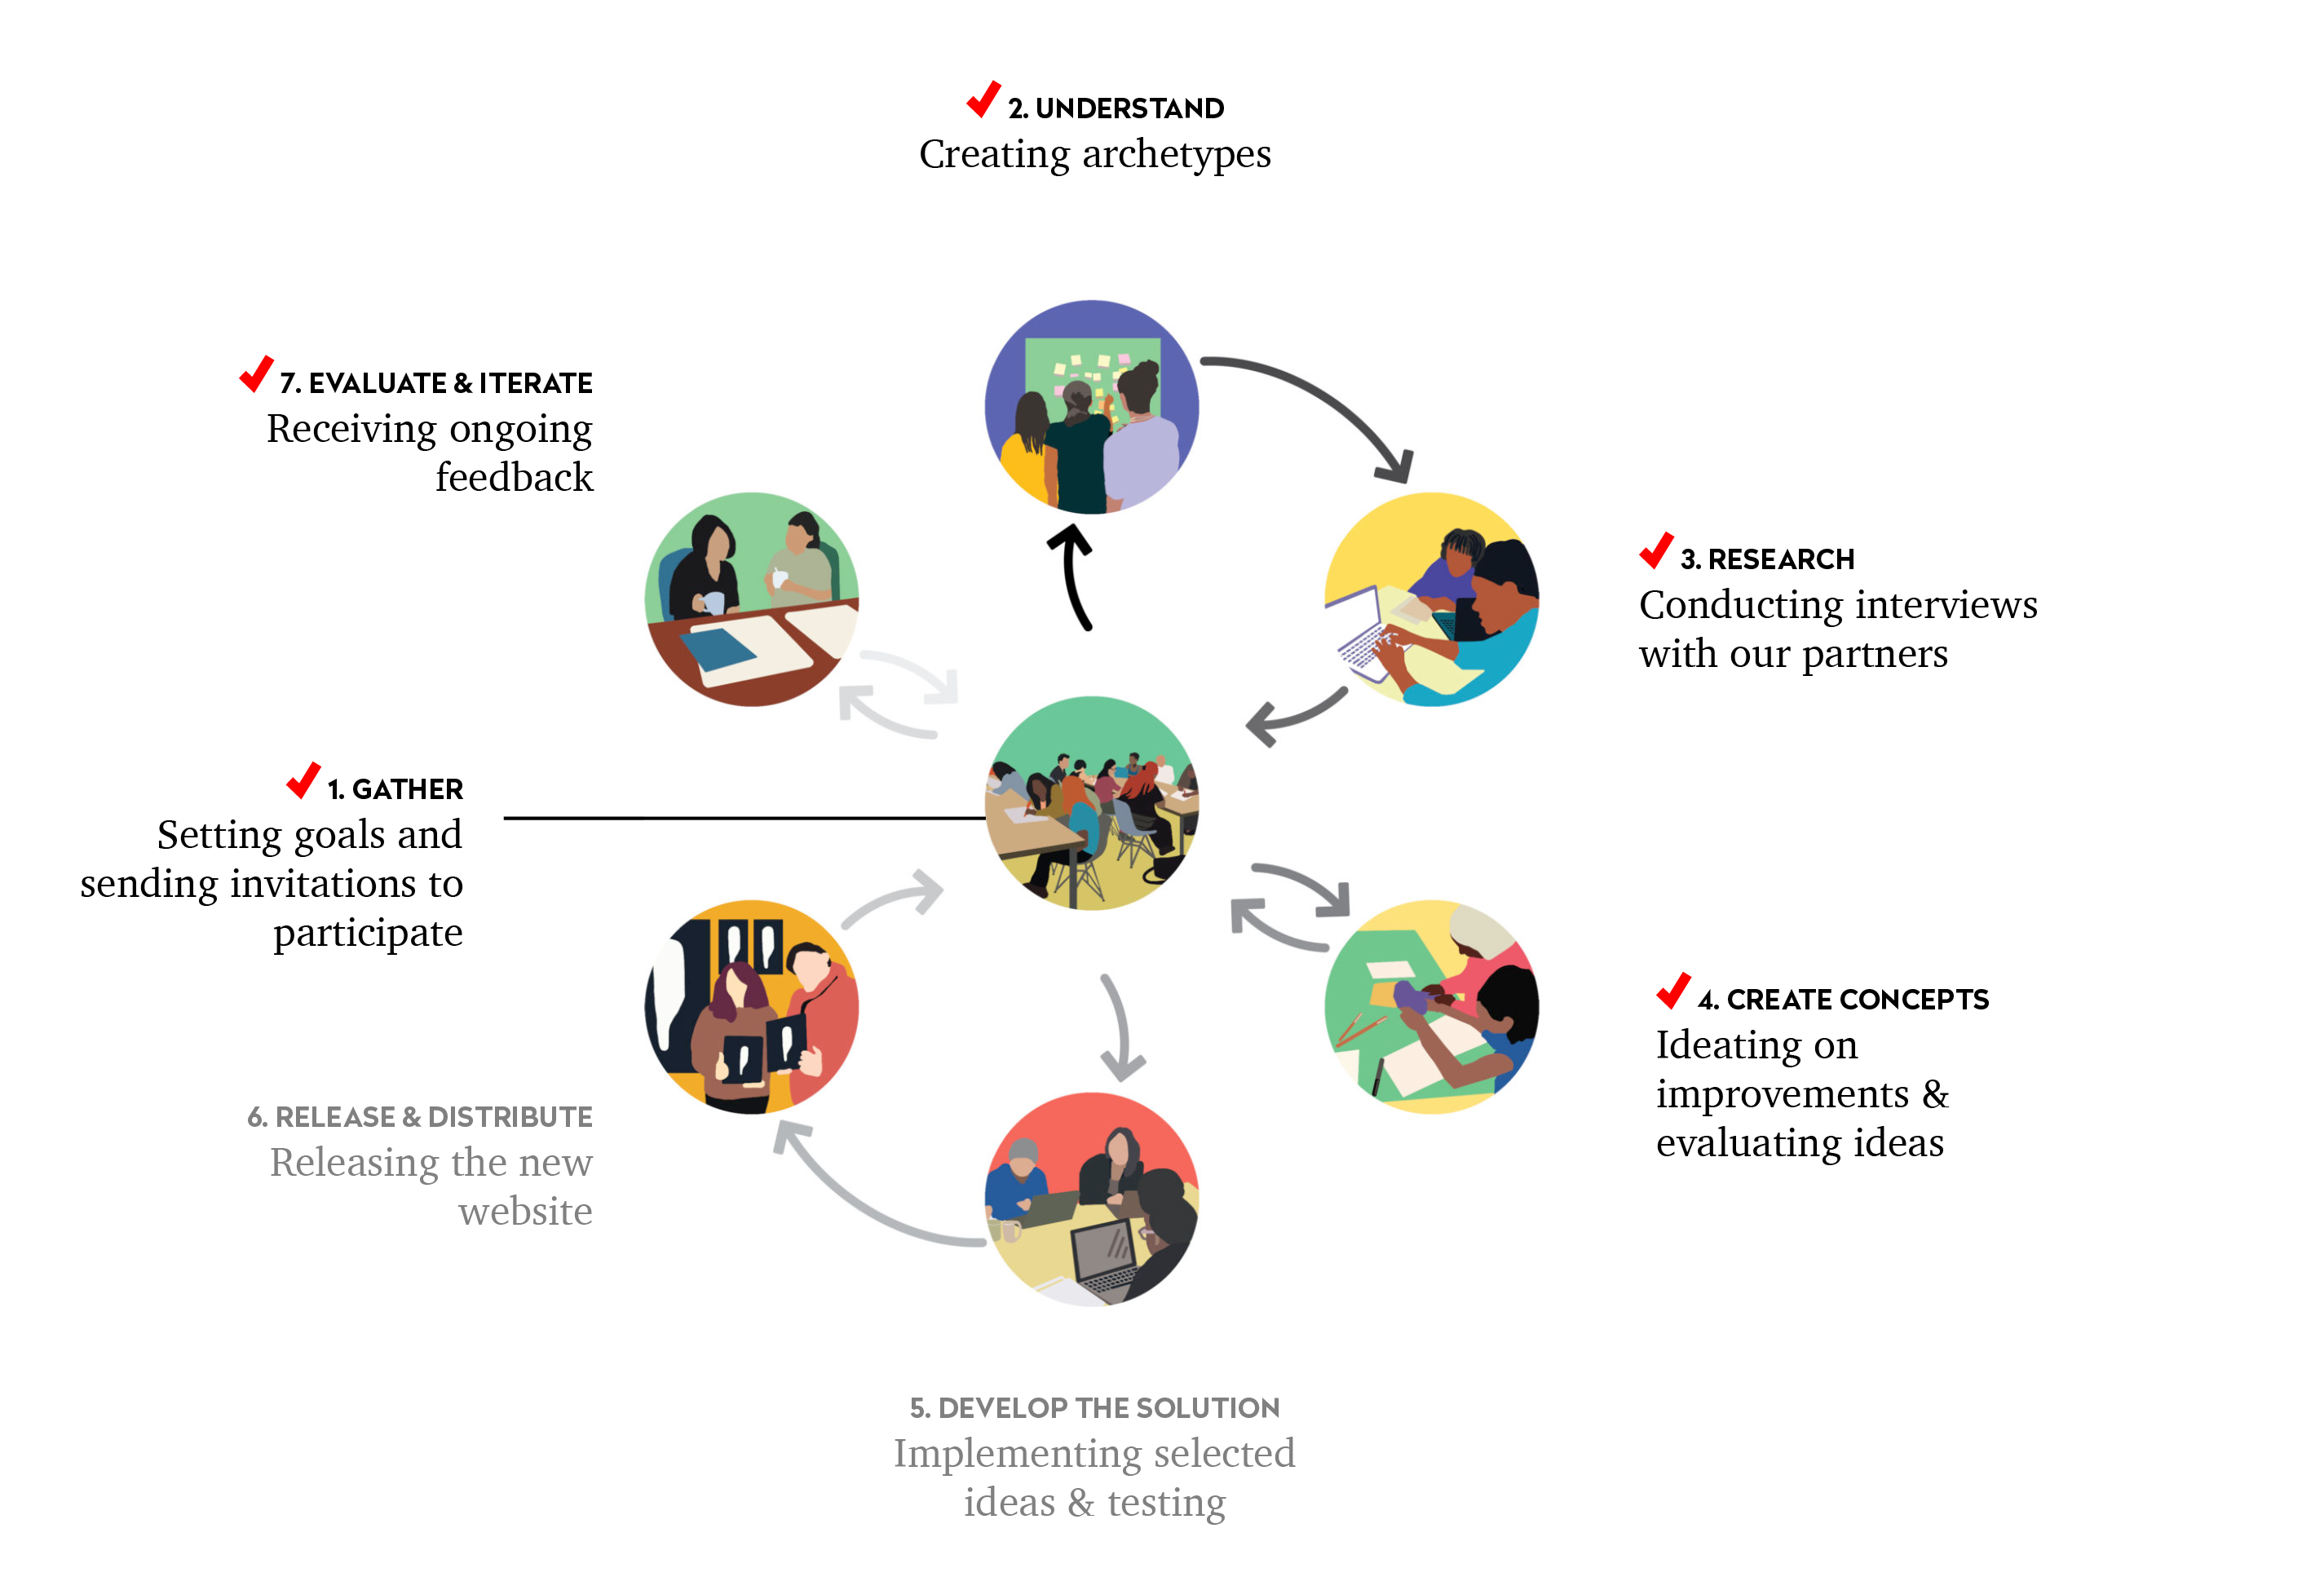 Infographic representing the seven parts of our codesign process: 1. Gather, 2. Understand, 3. Research, 4. Create Concepts, 5. Develop the solution, 6. Release and distribute, 7. Evaluate and iterate. Each step in the cycle connects back to 1 (Gather).